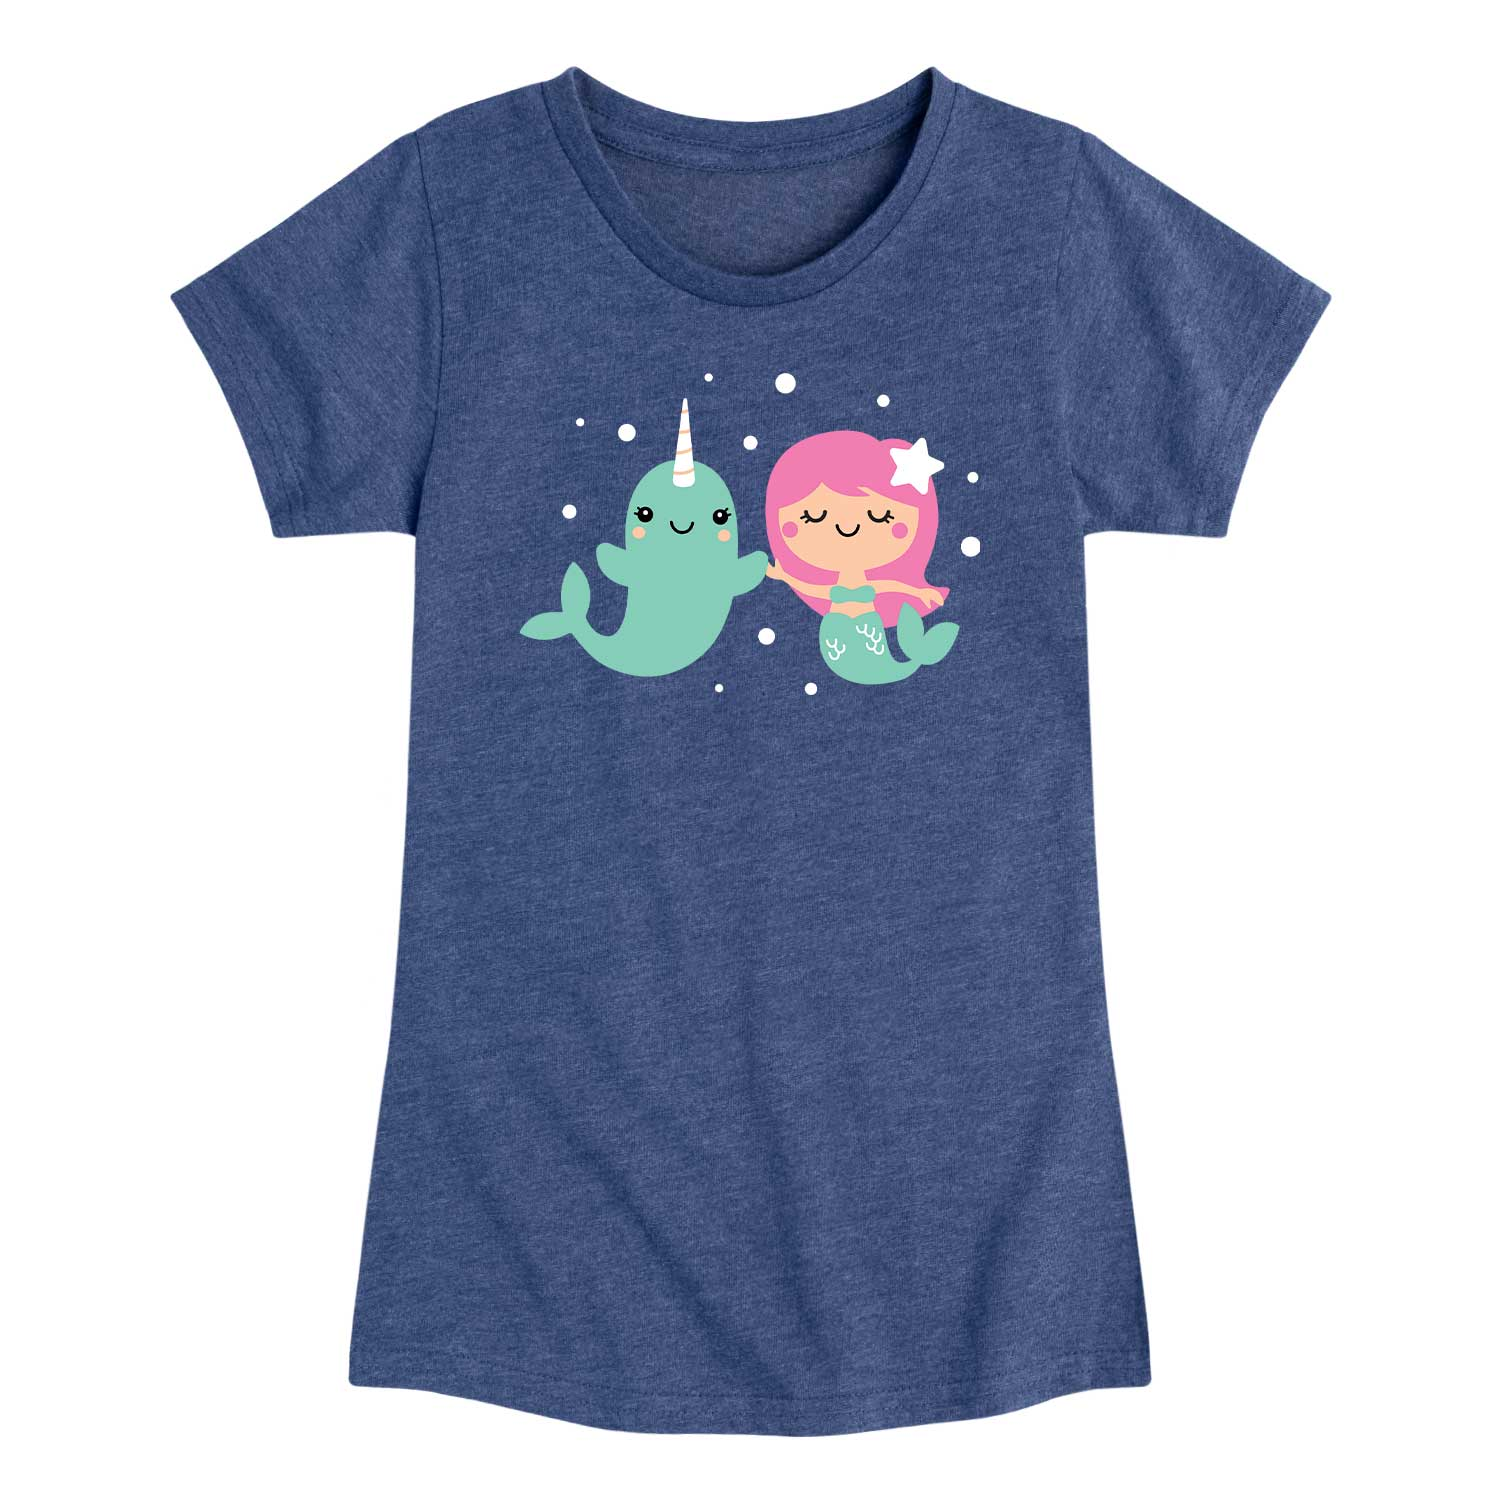 Narwhal Mermaid Friends - Youth & Toddler Girls Short Sleeve T-Shirt